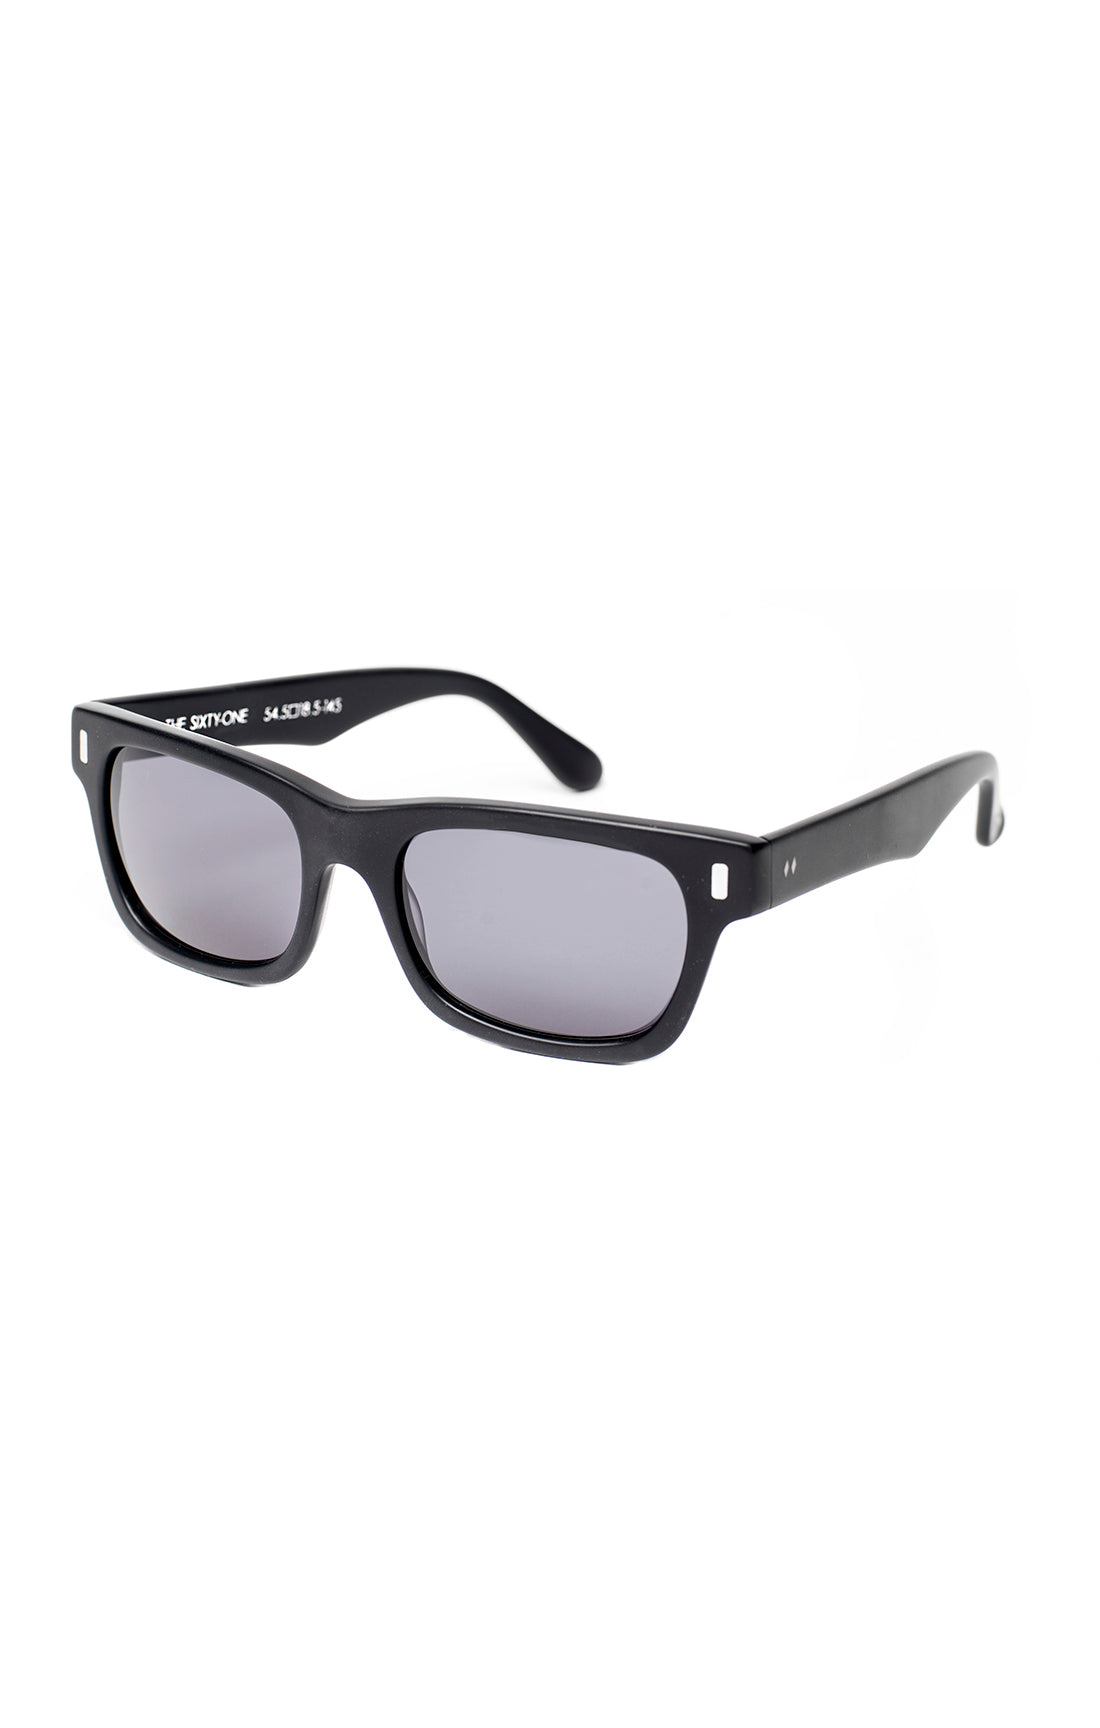 The SIXTY ONE Sunglasses - Black Frames w/ Smoke Lenses